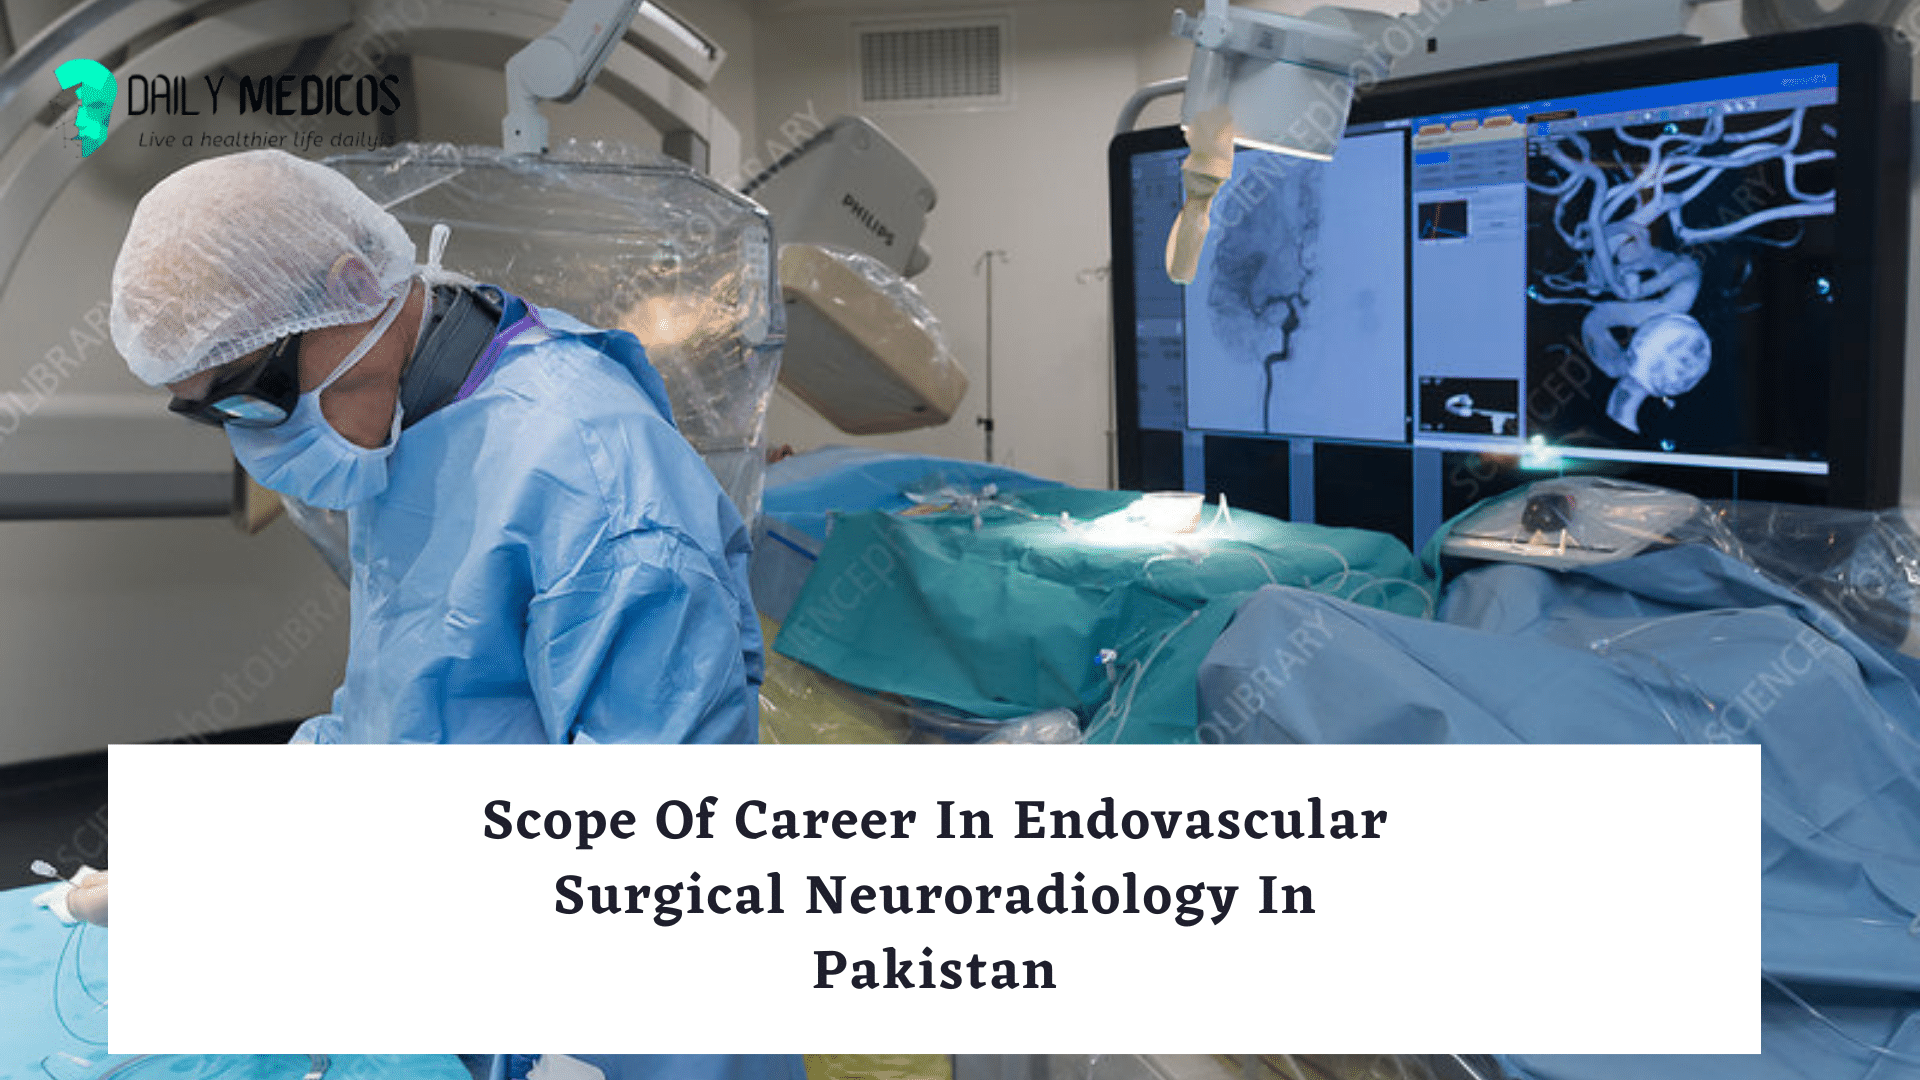 Scope Of Career In Endovascular Surgical Neuroradiology In Pakistan 25 - Daily Medicos